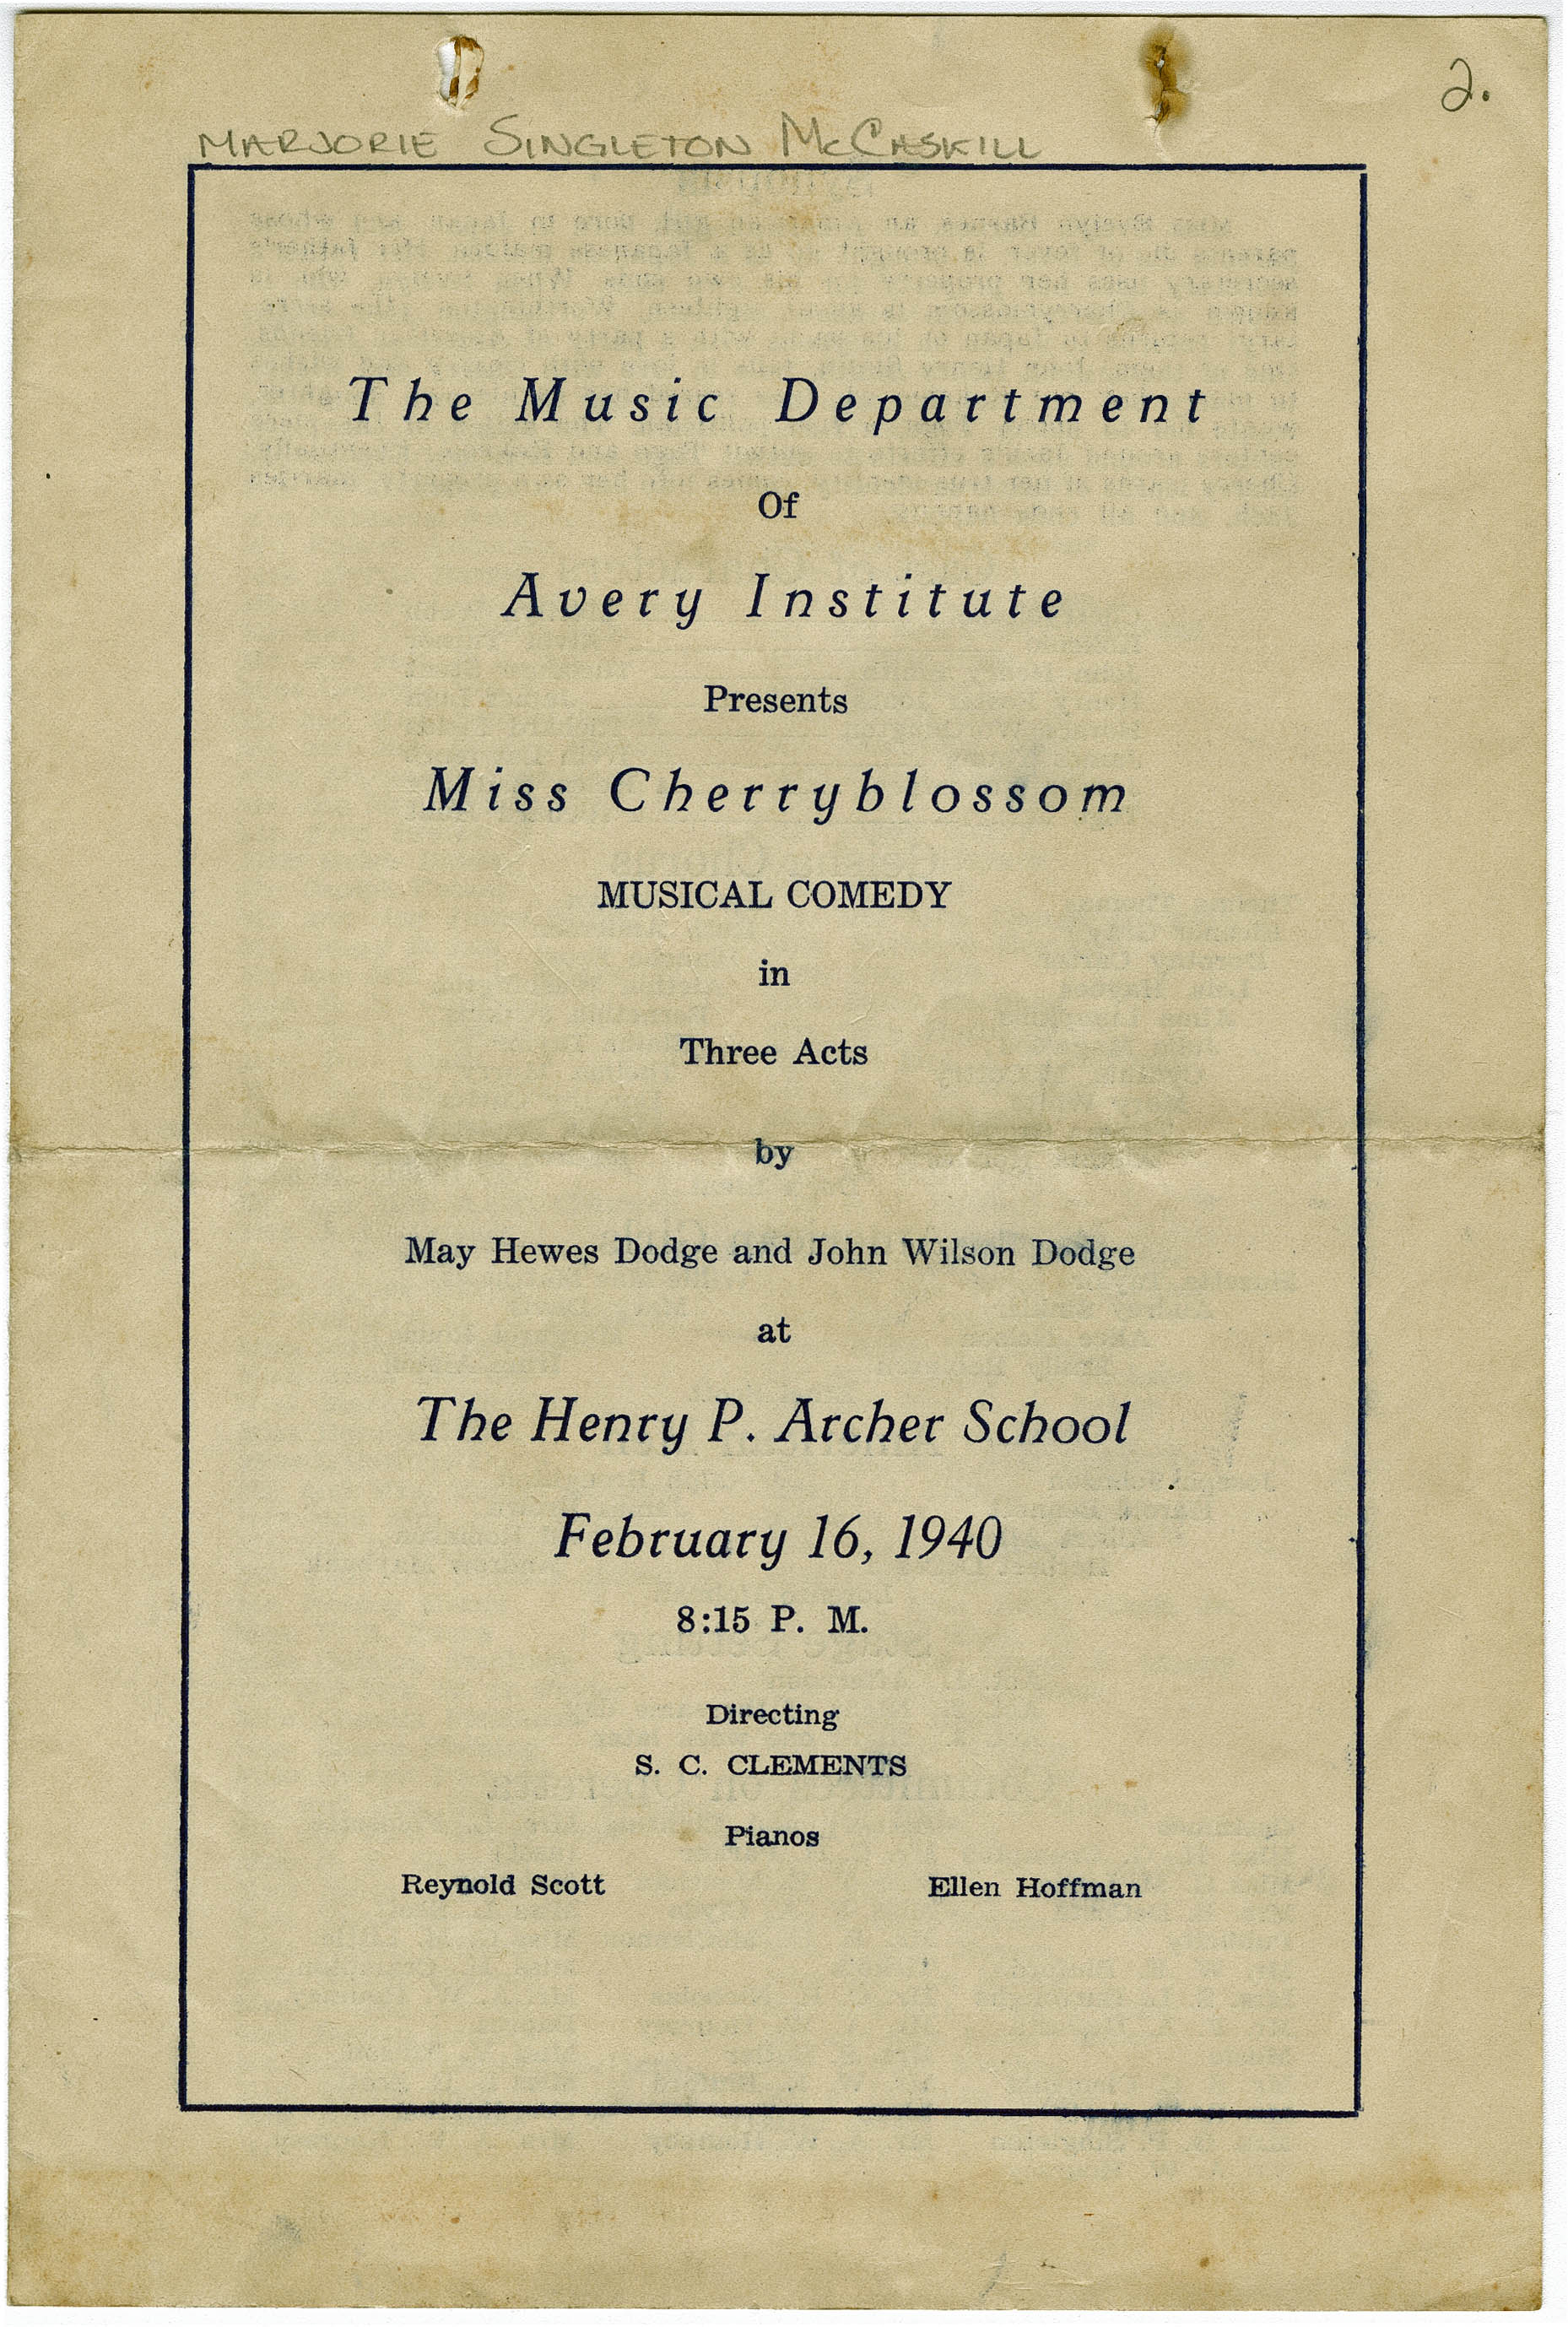 Program for presentation of the musical comedy